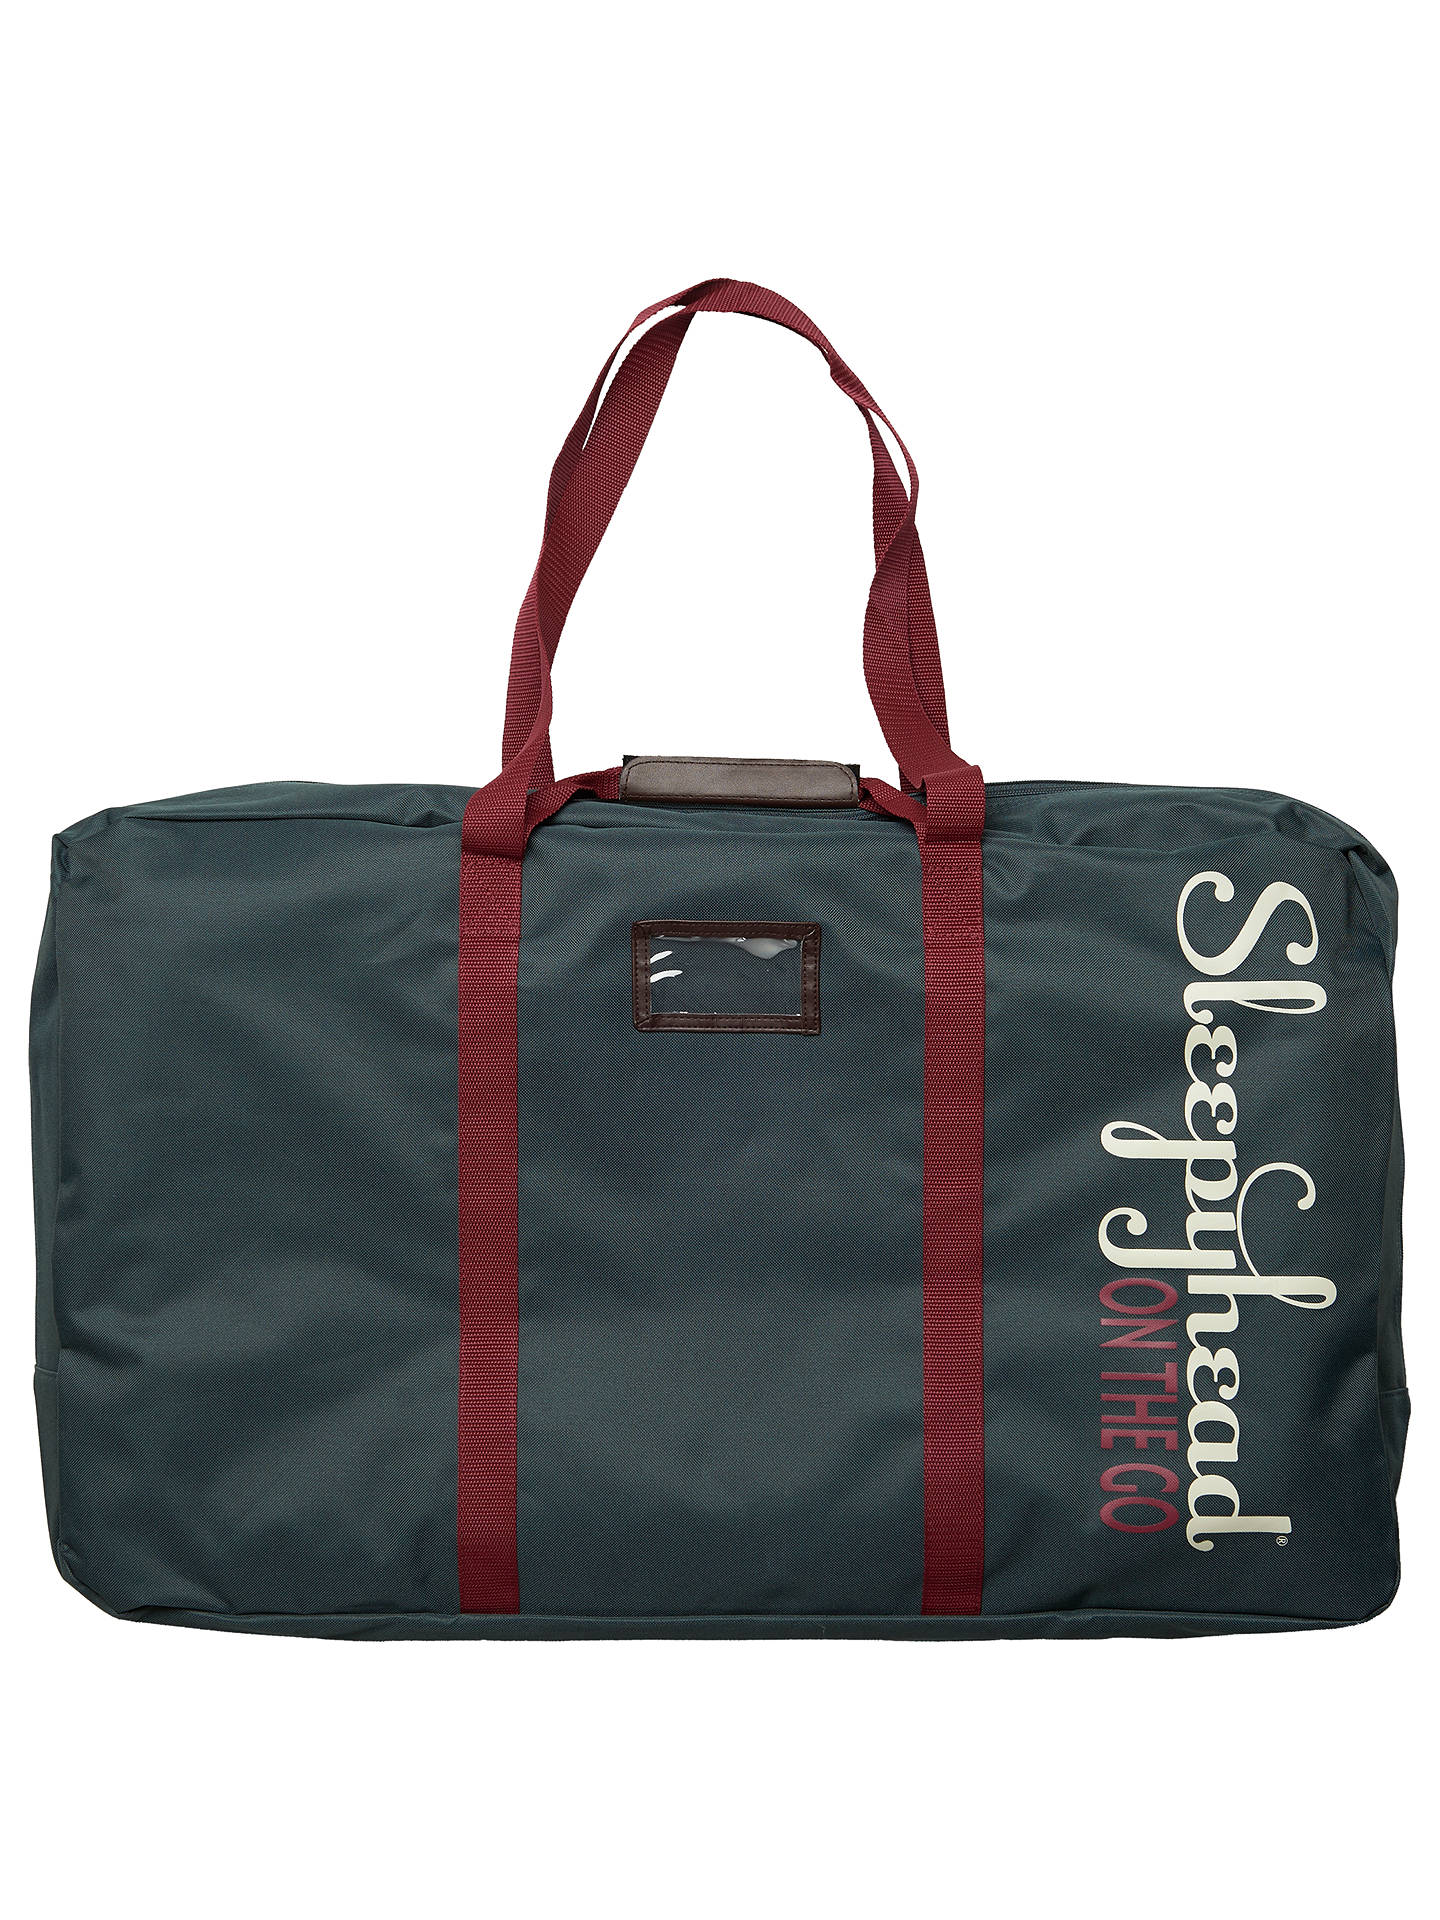 Buy Sleepyhead Grand Transport Bag, Teal Online at johnlewis.com